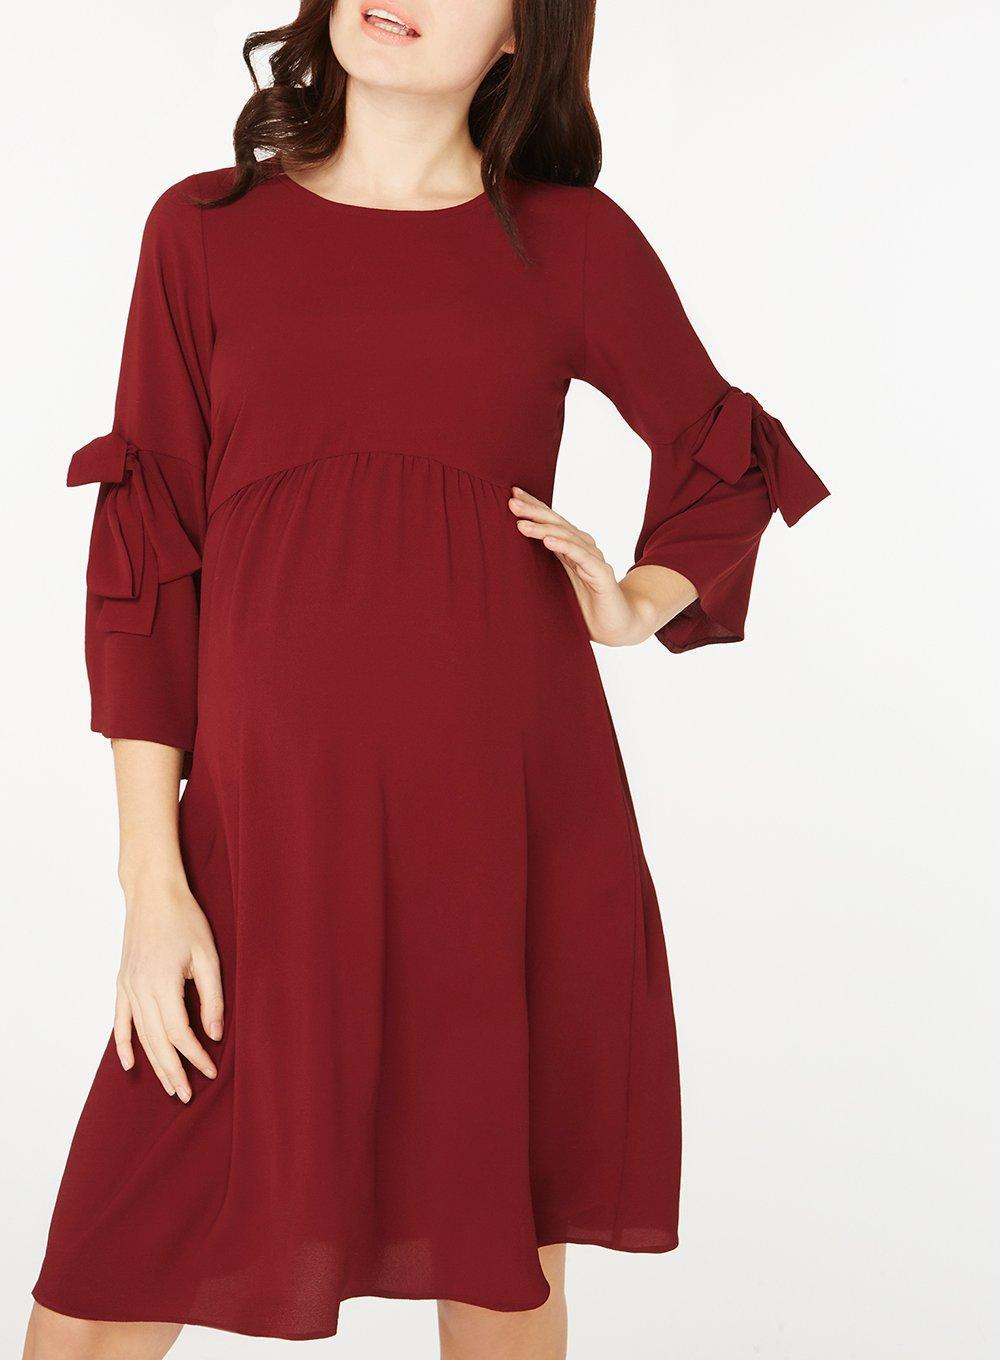 ff5487c7be57b Gallery. Previously sold at: Dorothy Perkins · Women's Burgundy Dresses